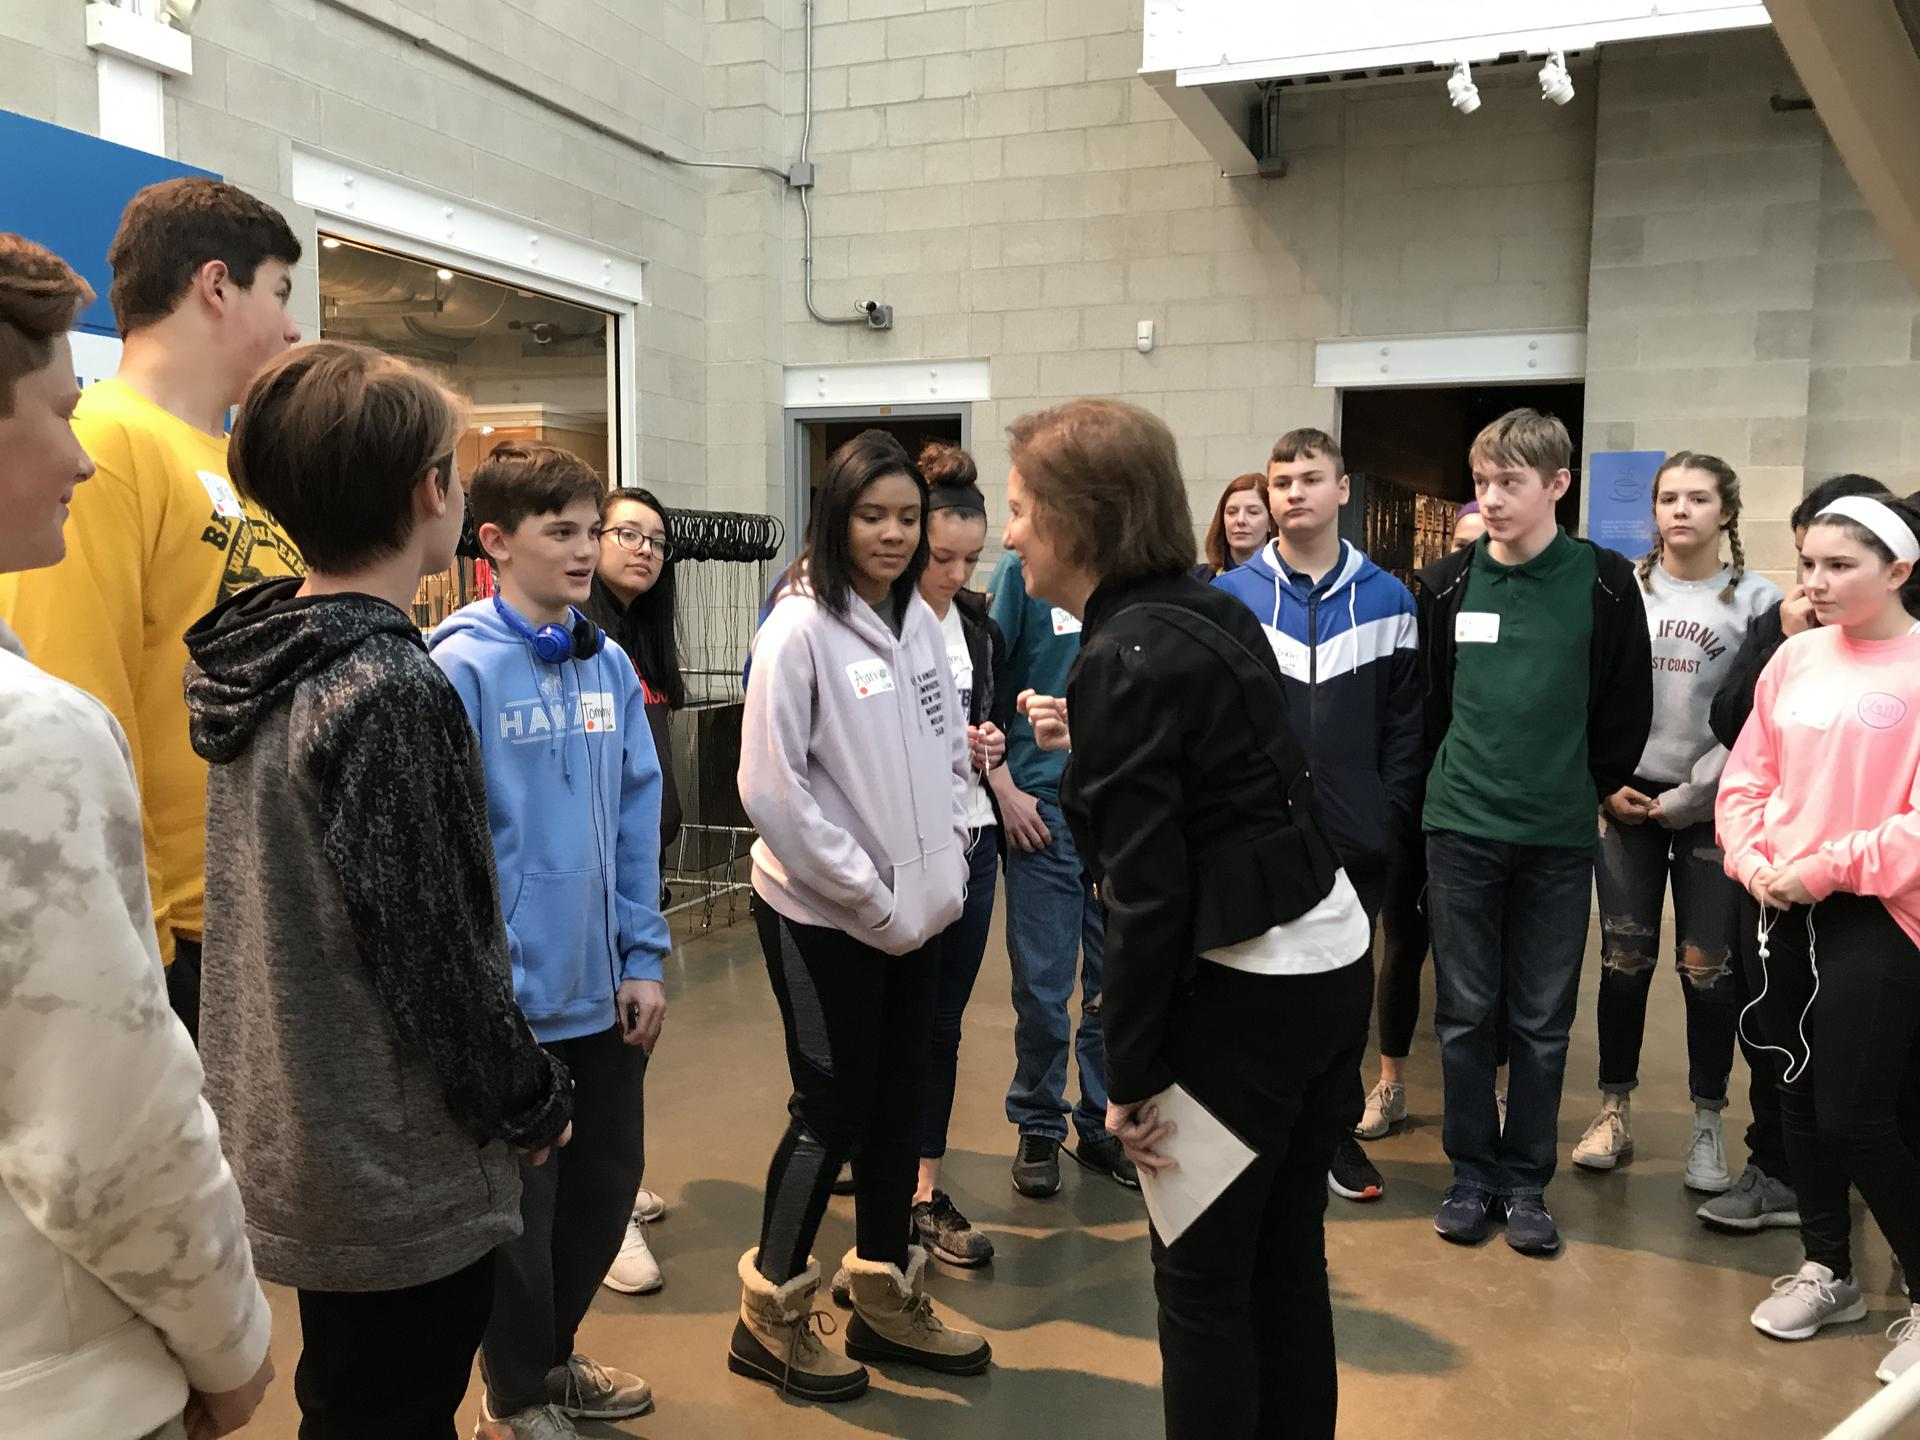 Eighth graders listening to guide at Holocaust Museum